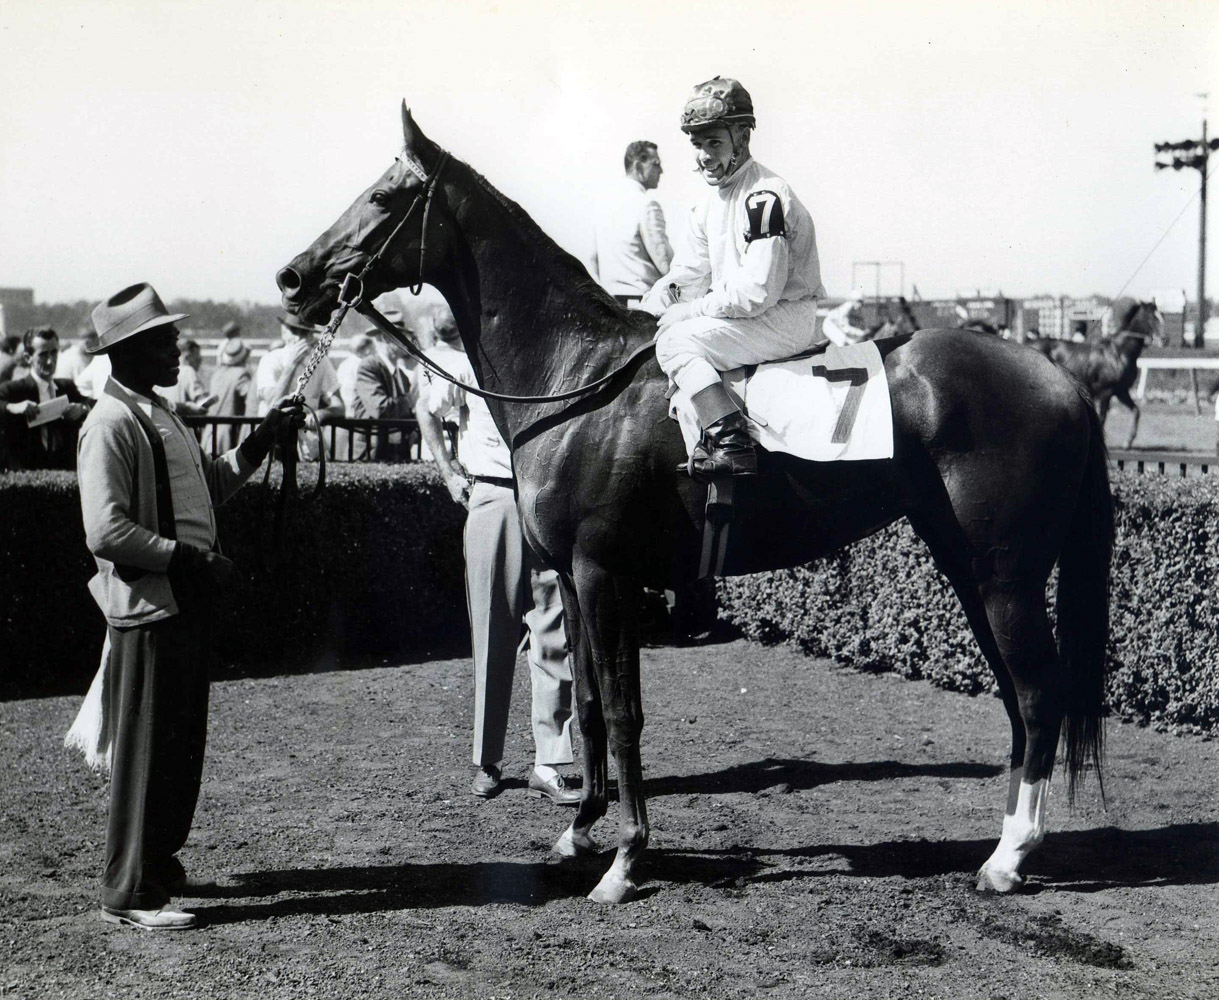 Silver Spoon (Eldon Nelson up) in the winner's circle at Belmont Park for her very first career start, September 1958 (Mike Sirico/Museum Collection)